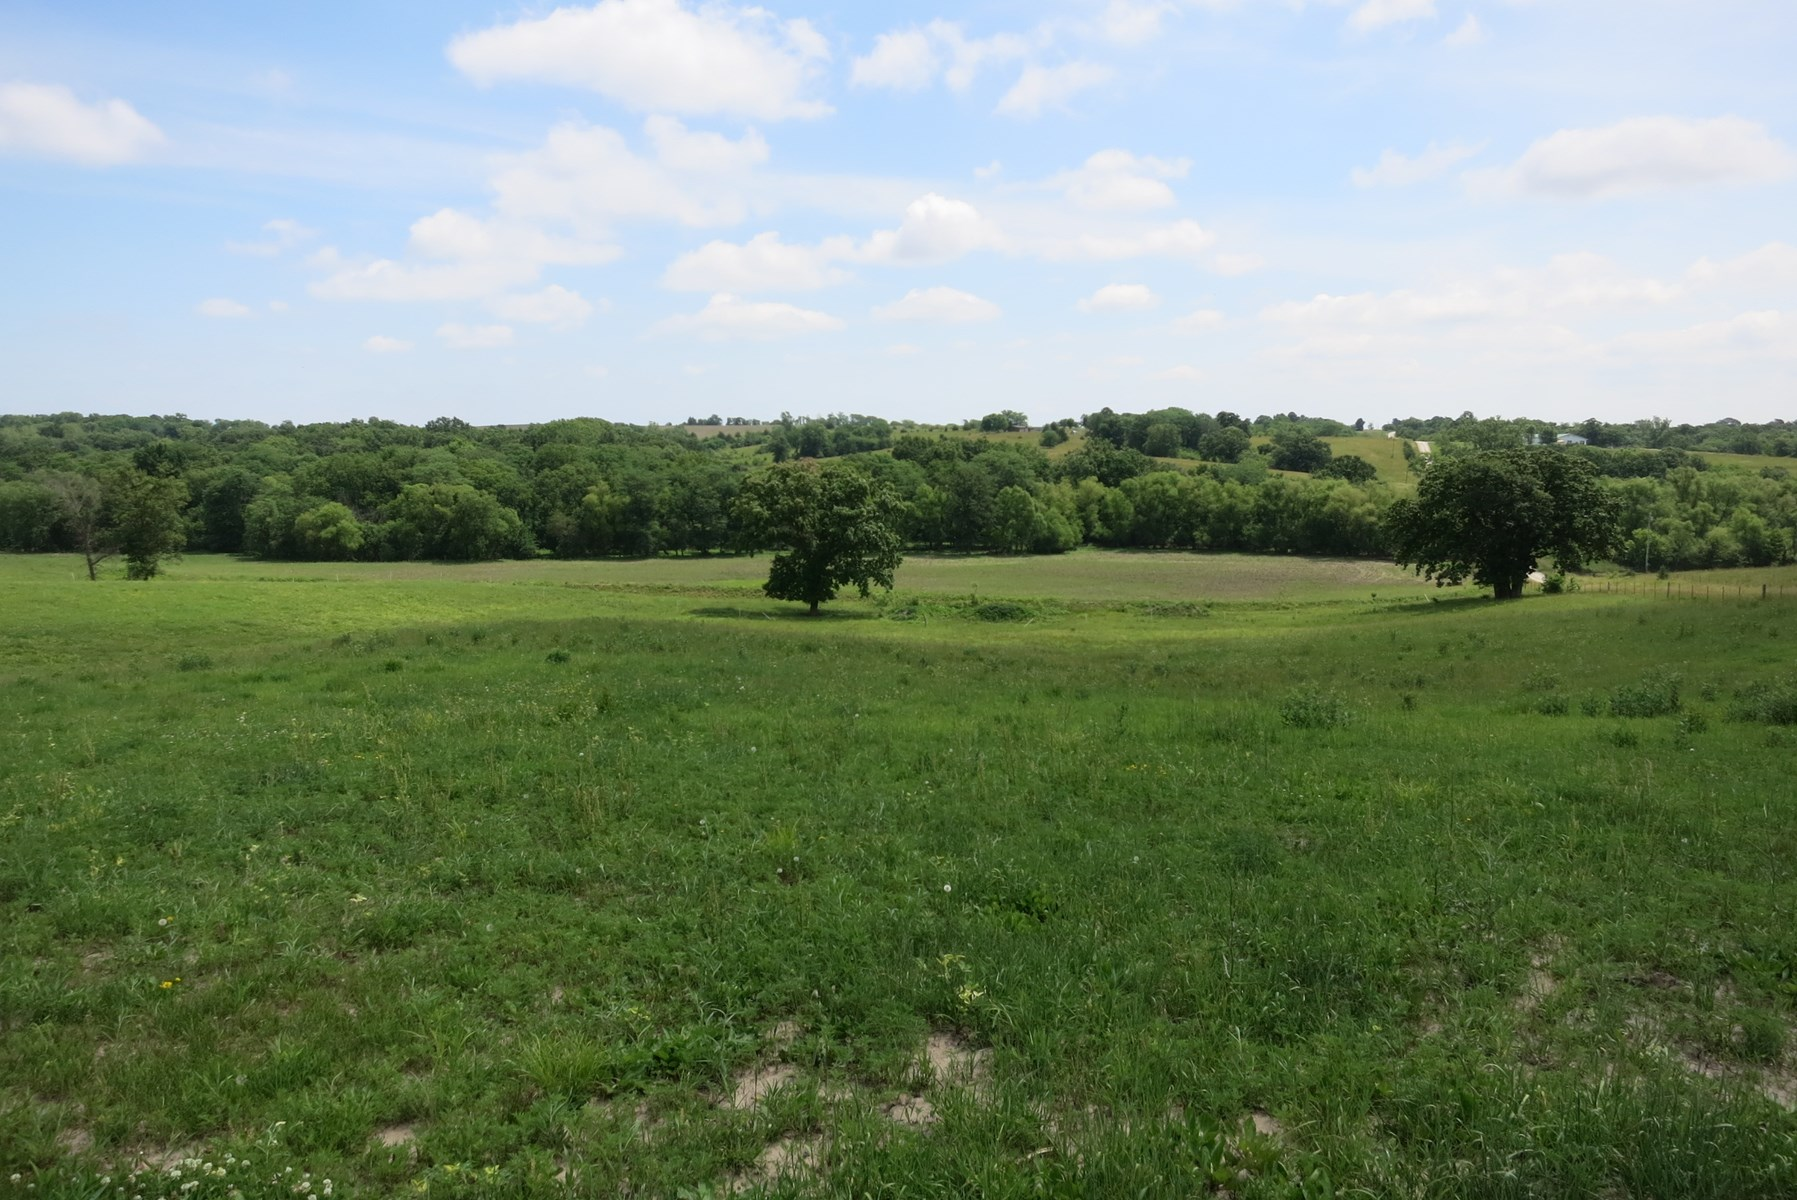 For Sale 80 Acre Tract in NW Missouri